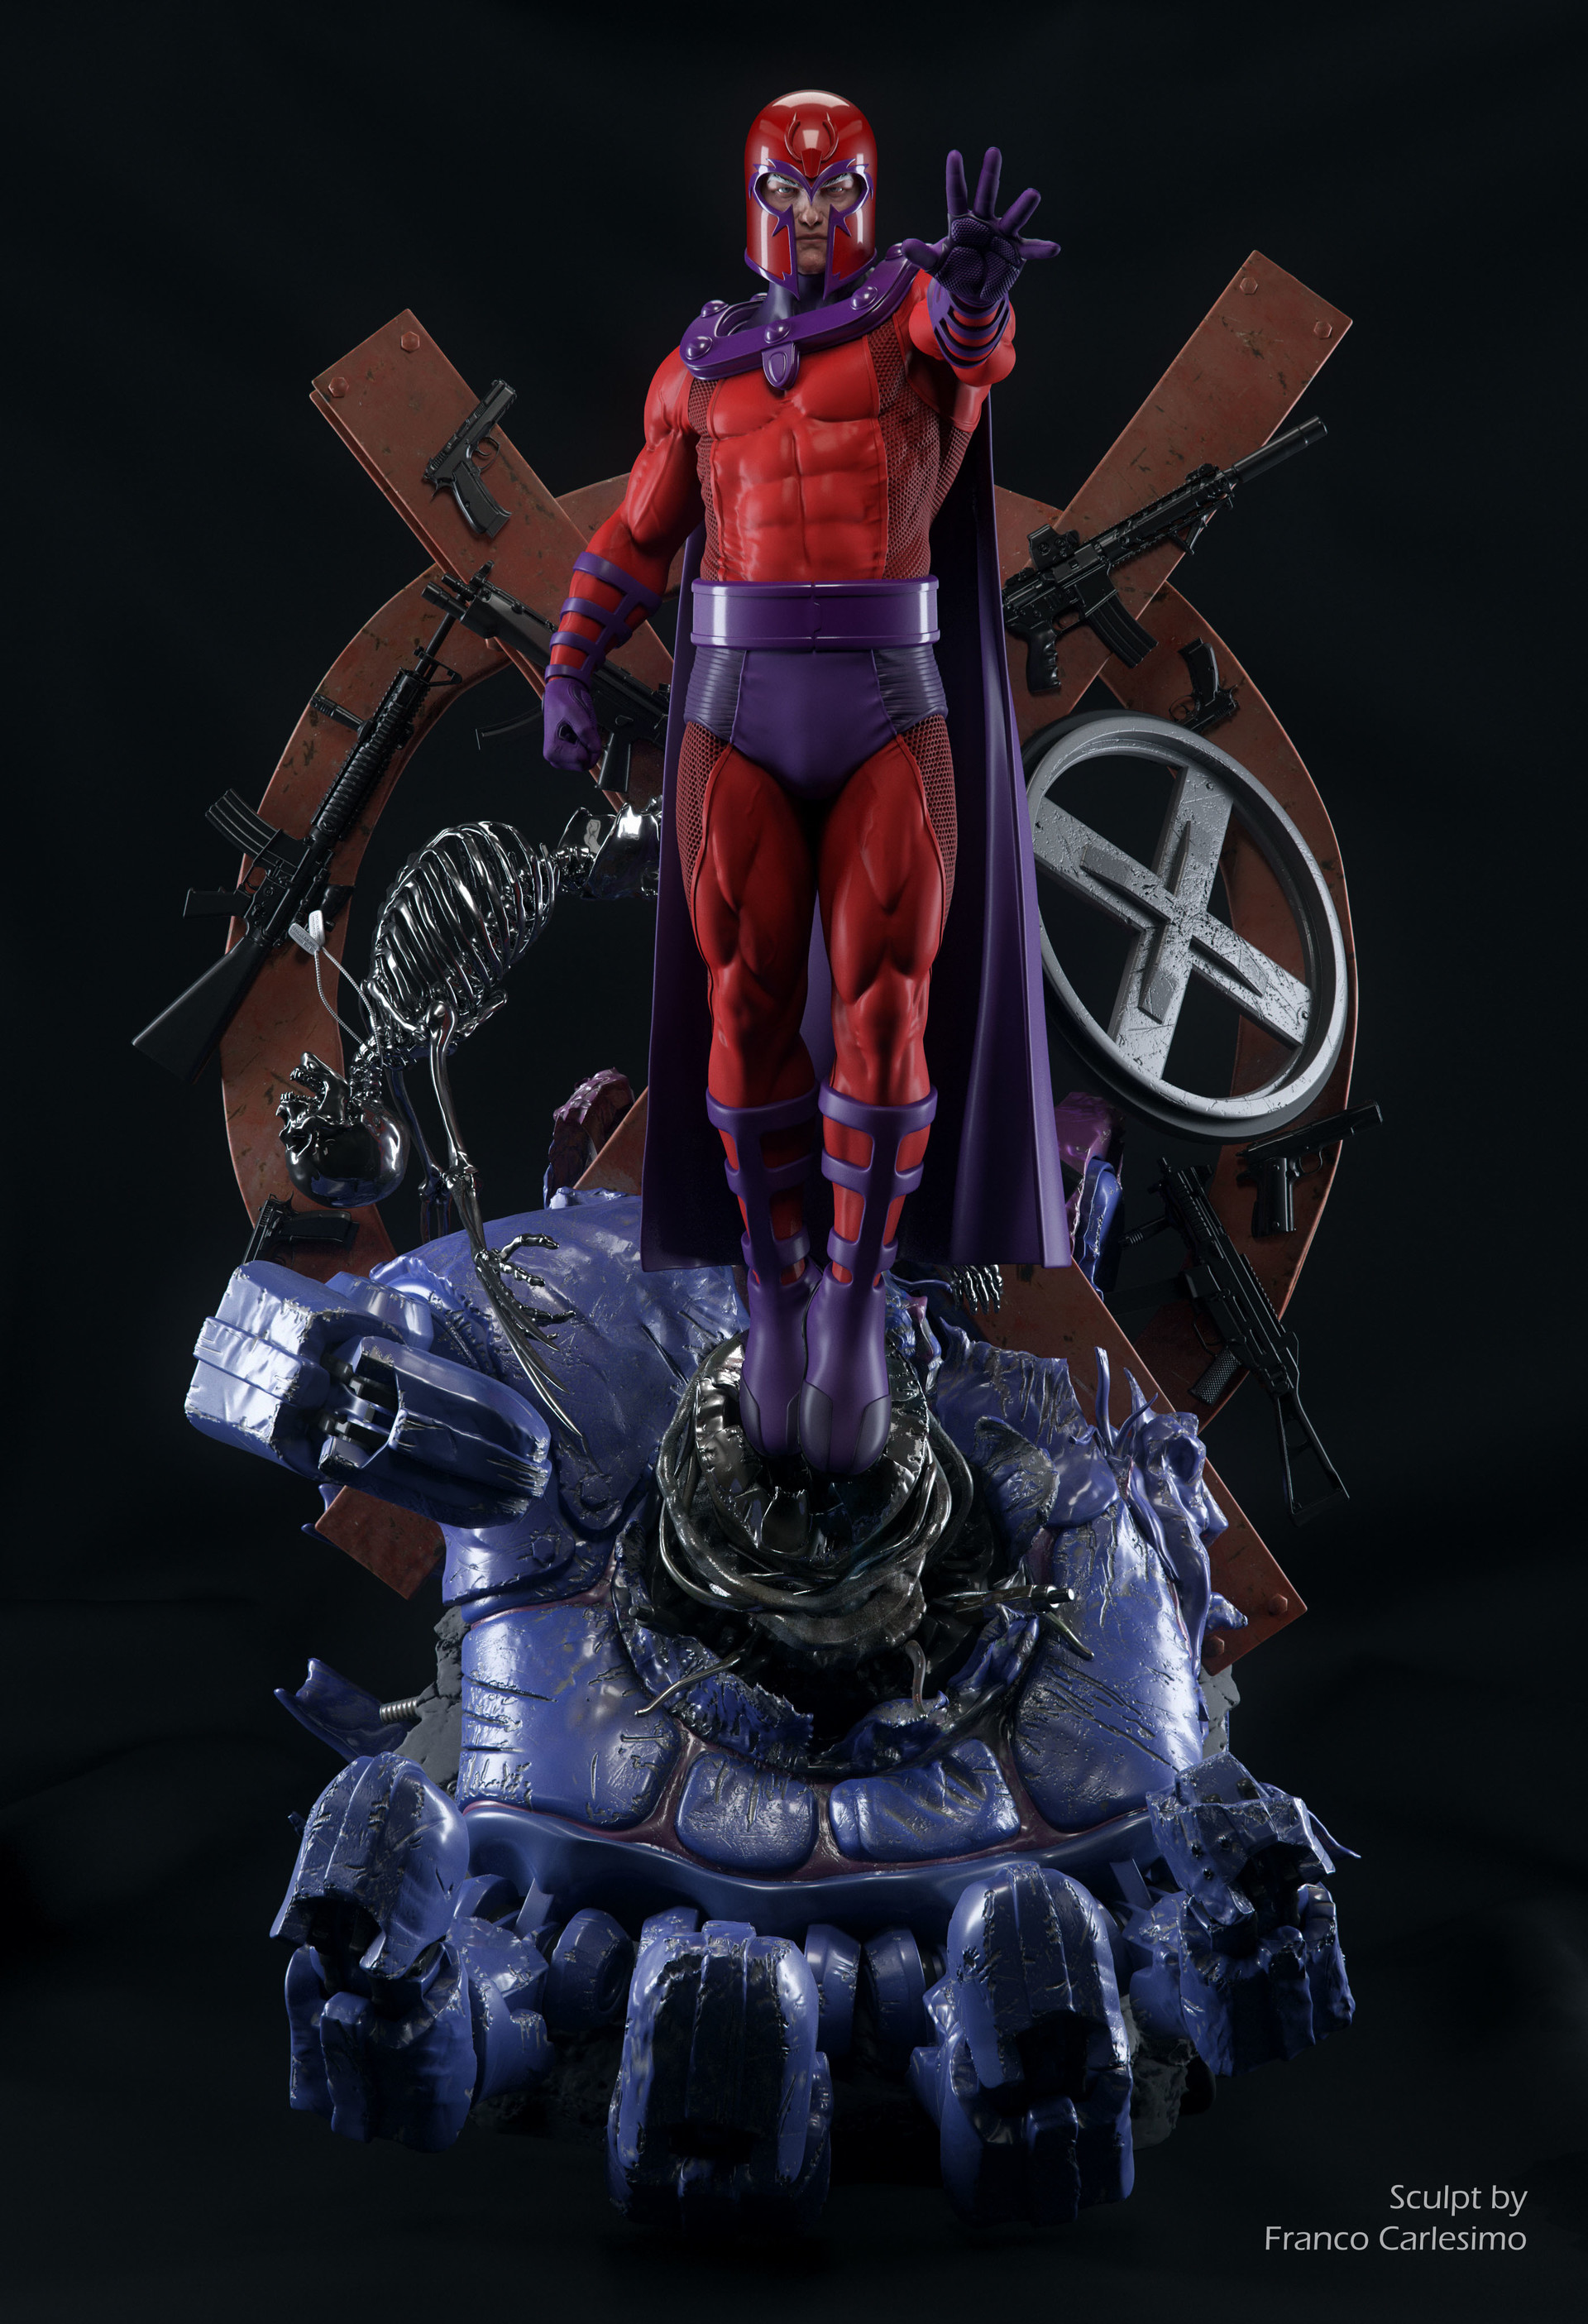 Franco carlesimo magneto hd renders 00000 low